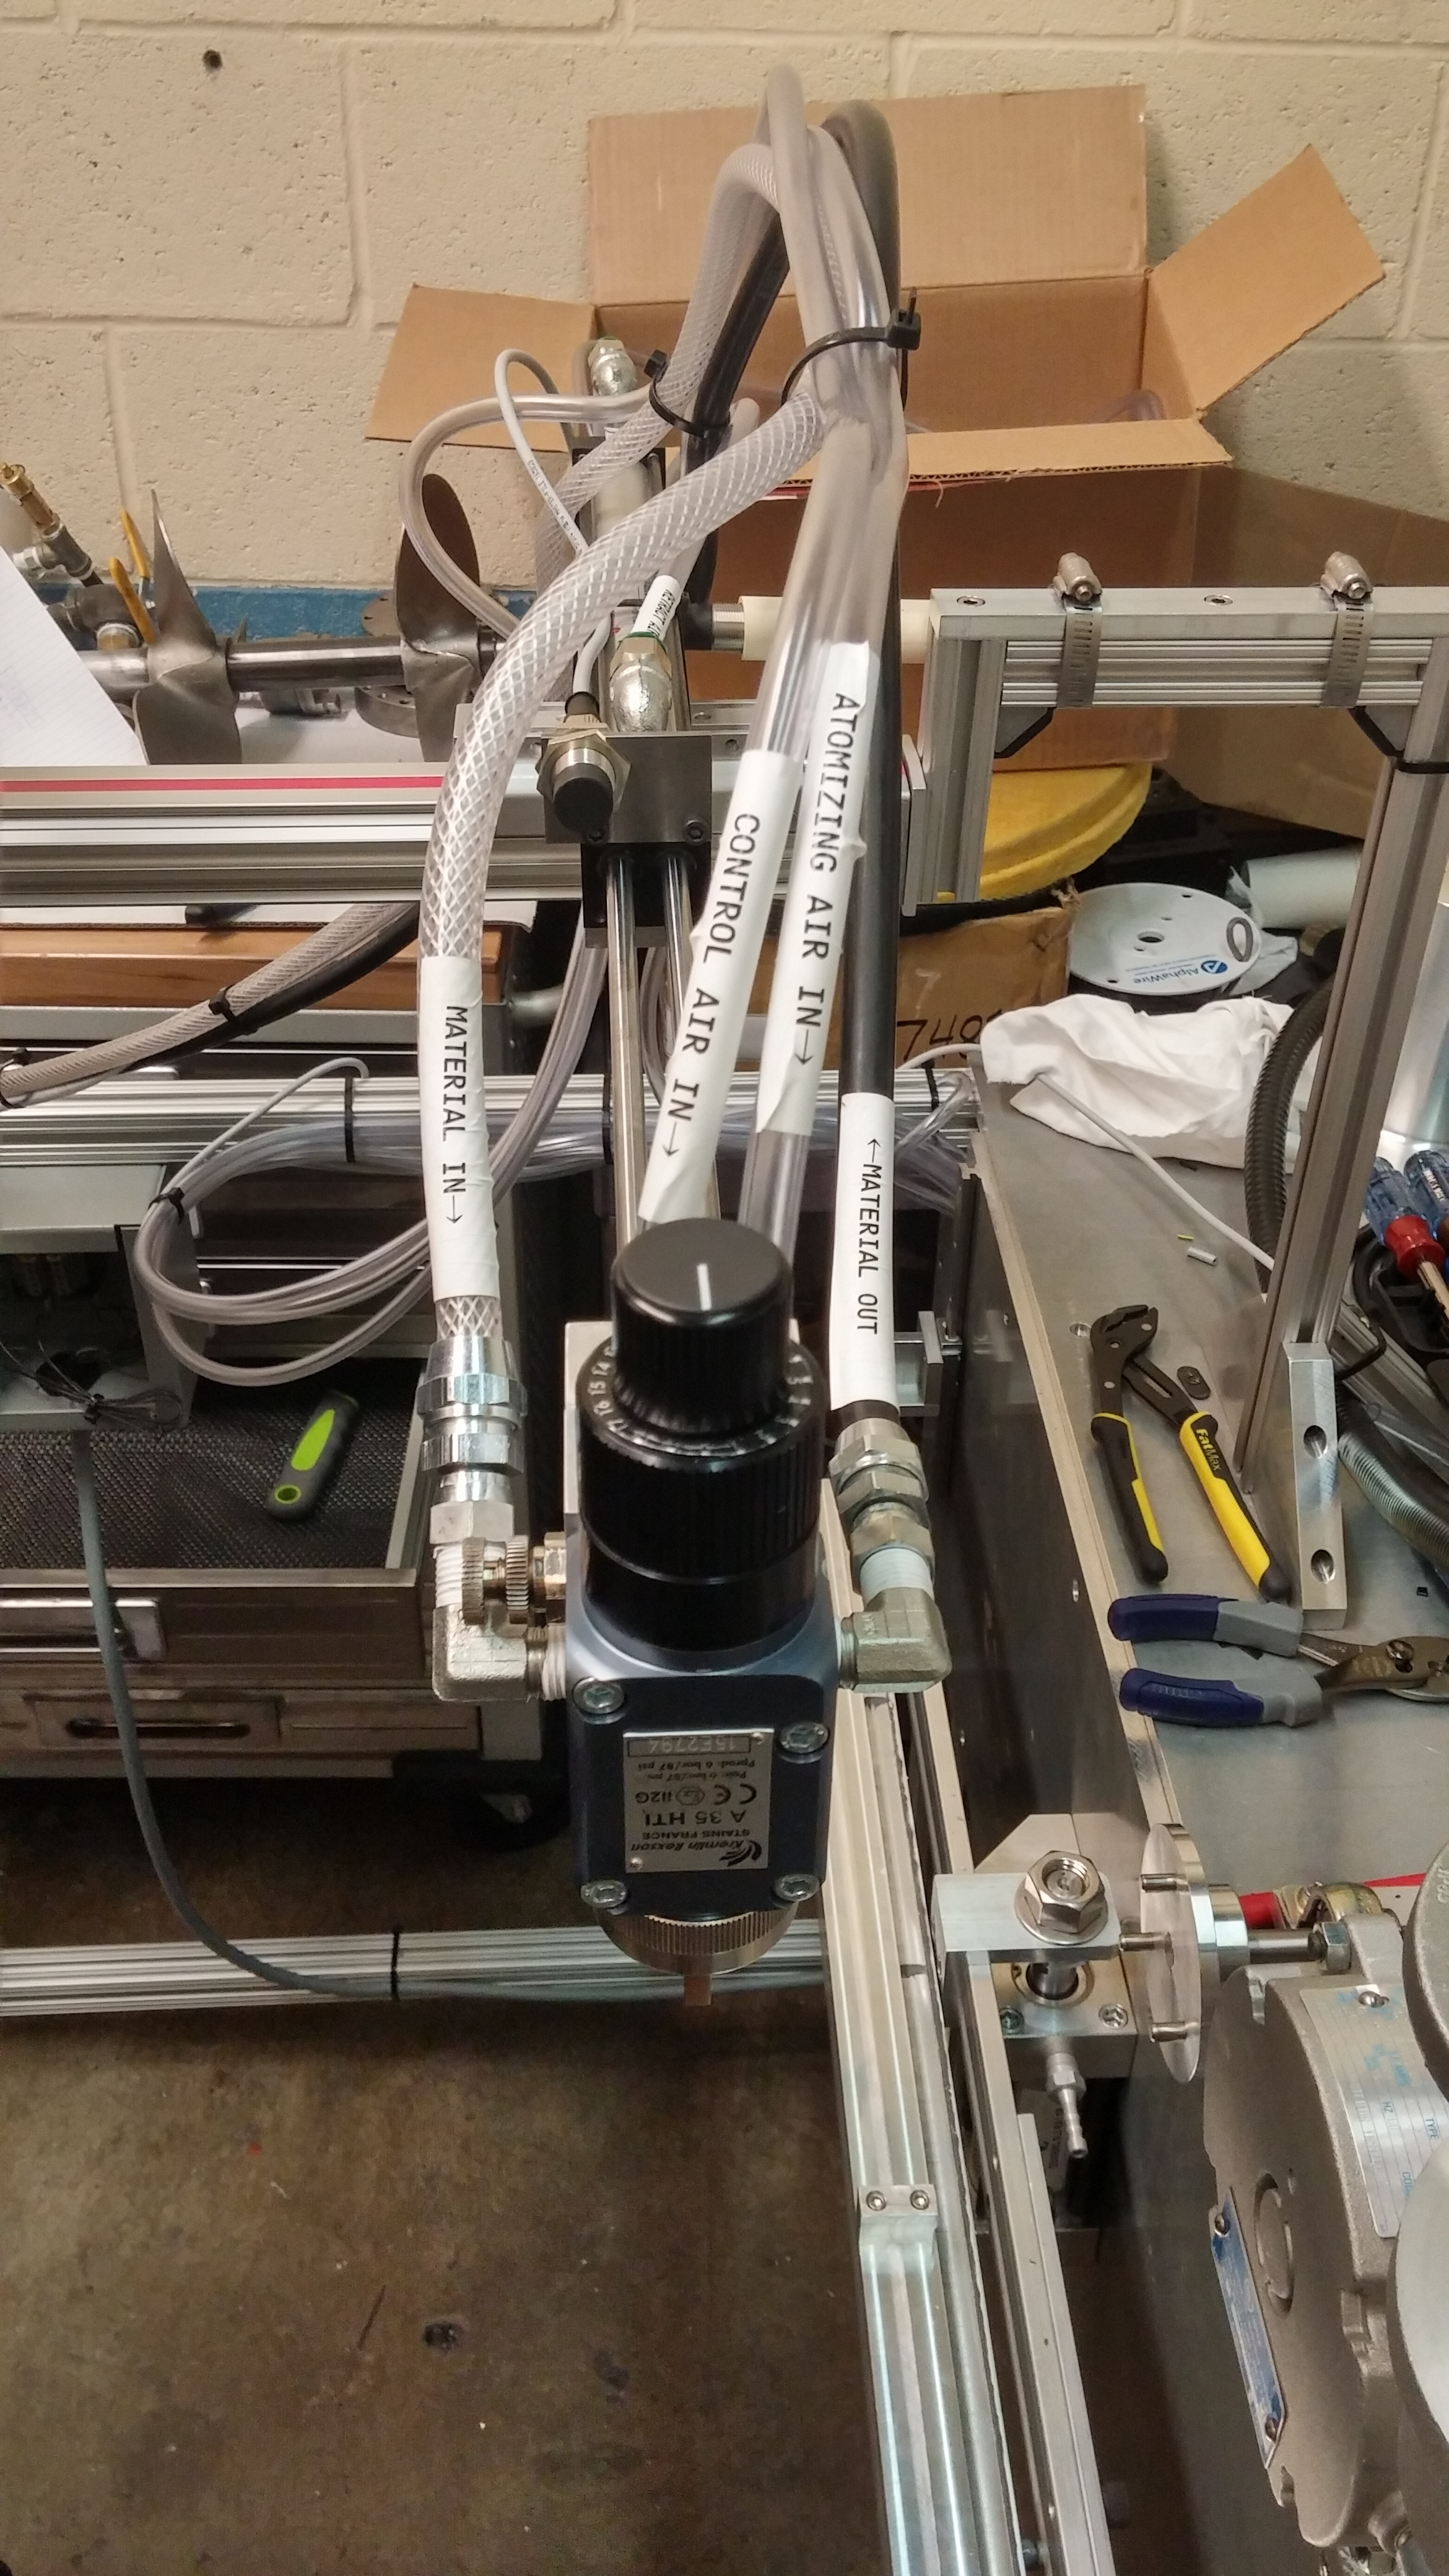 Pneumatic fluid and air lines attached to the applicator